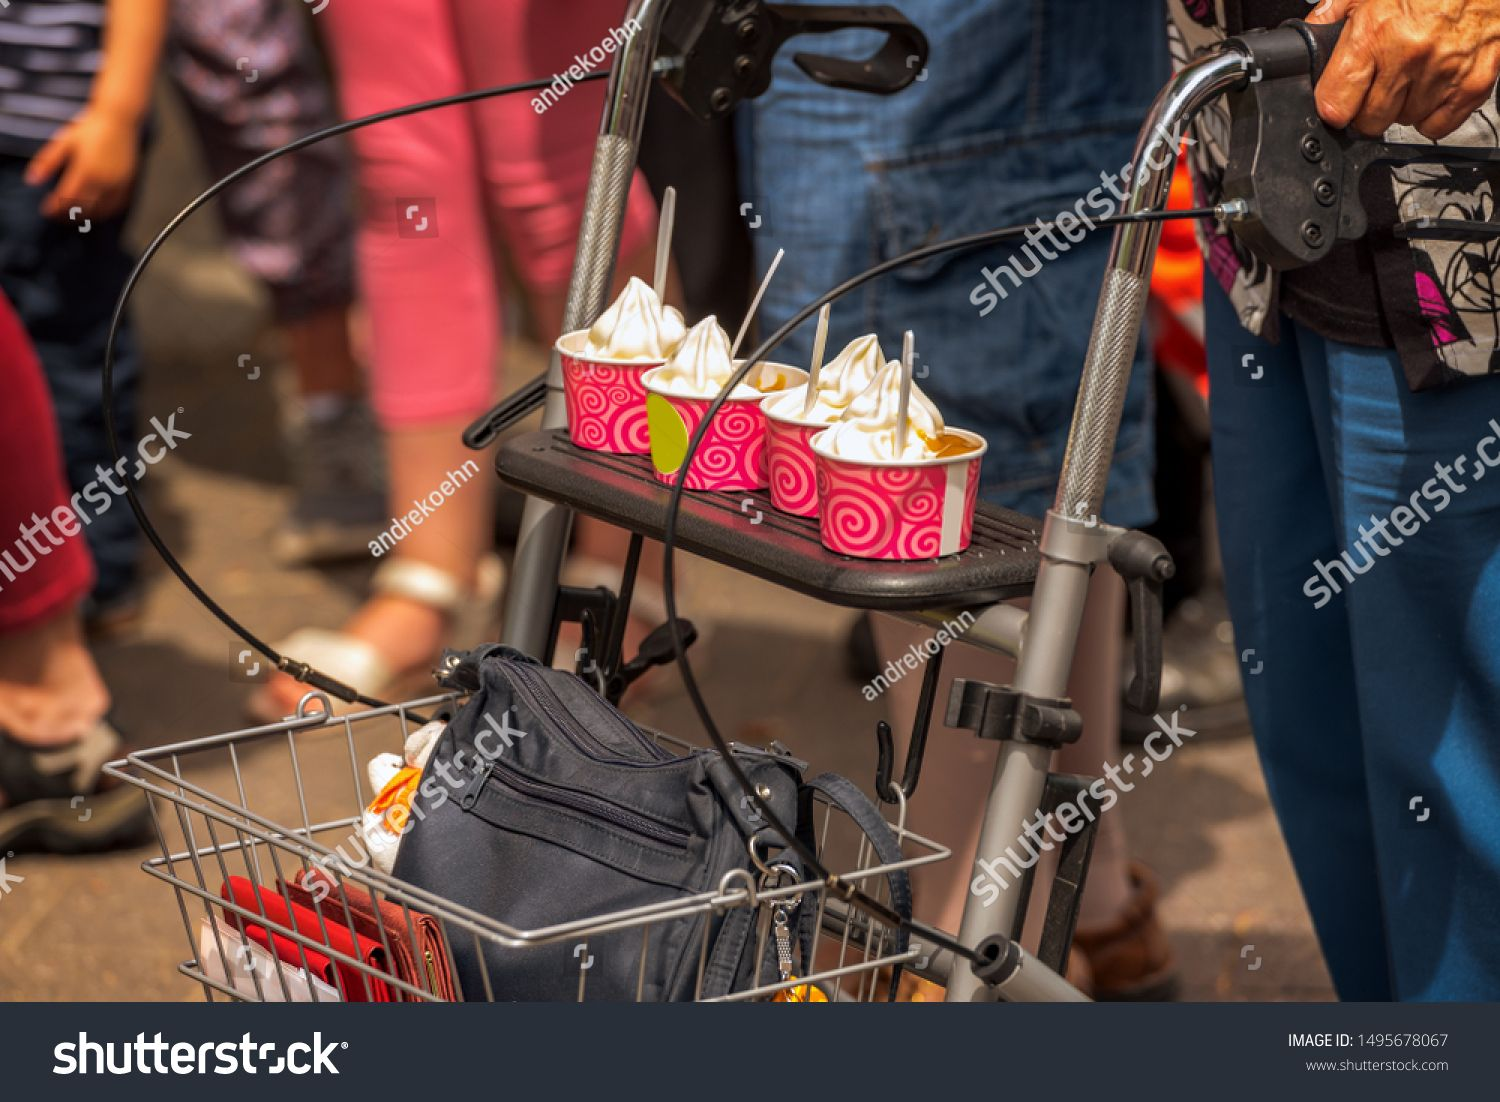 An old woman is driving on her wheeled walker yummy ice cream during a street party Concept food and drink